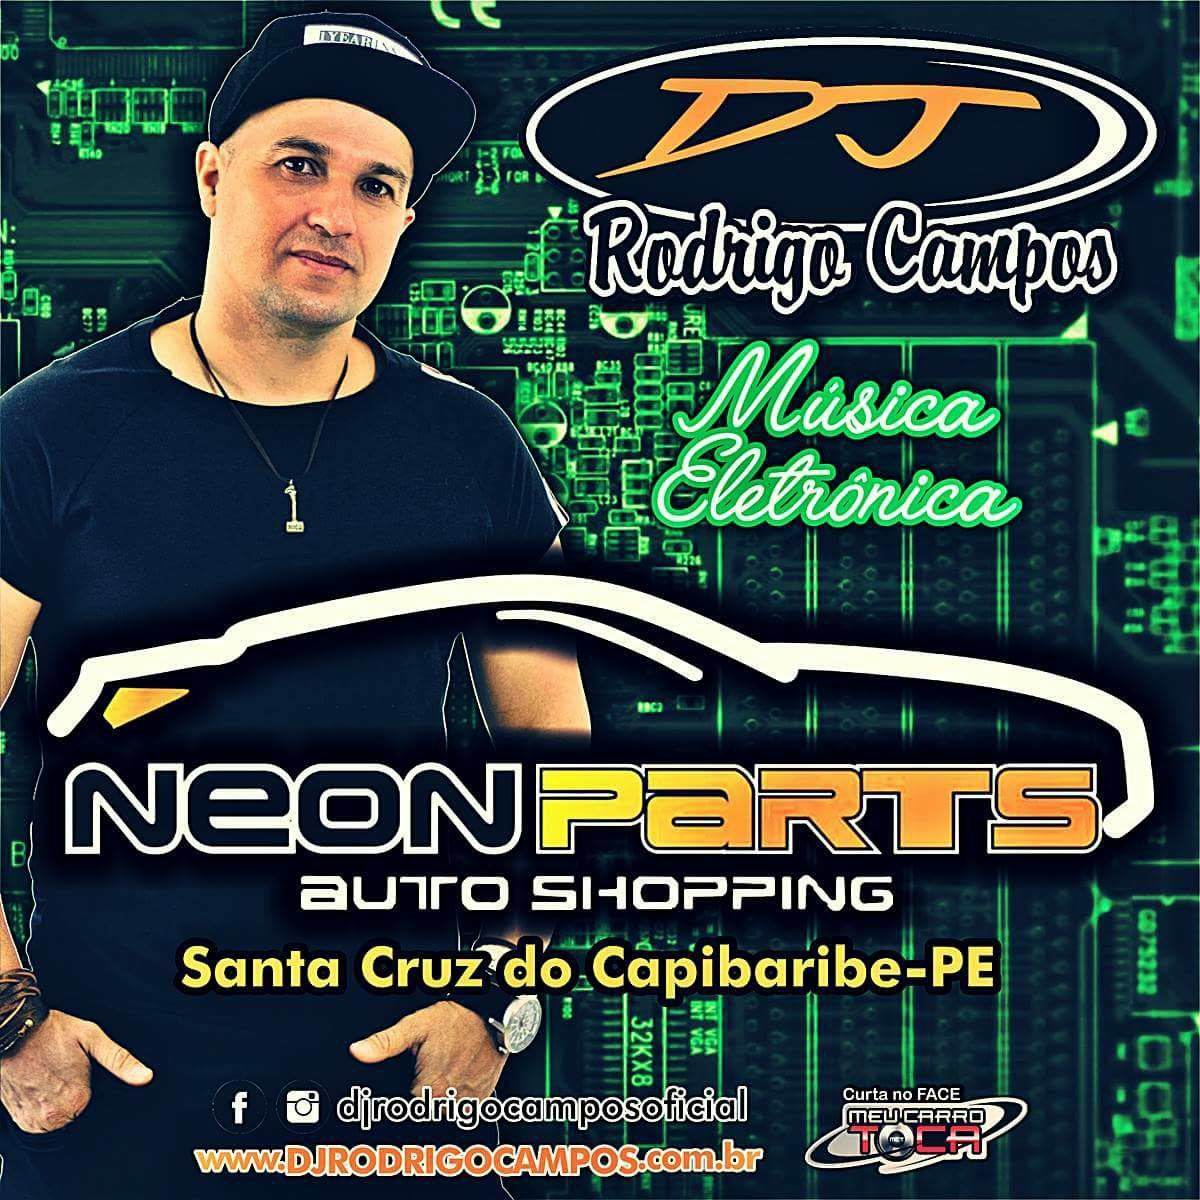 NeonParts (Sta Cruz do Capibaribe PE)